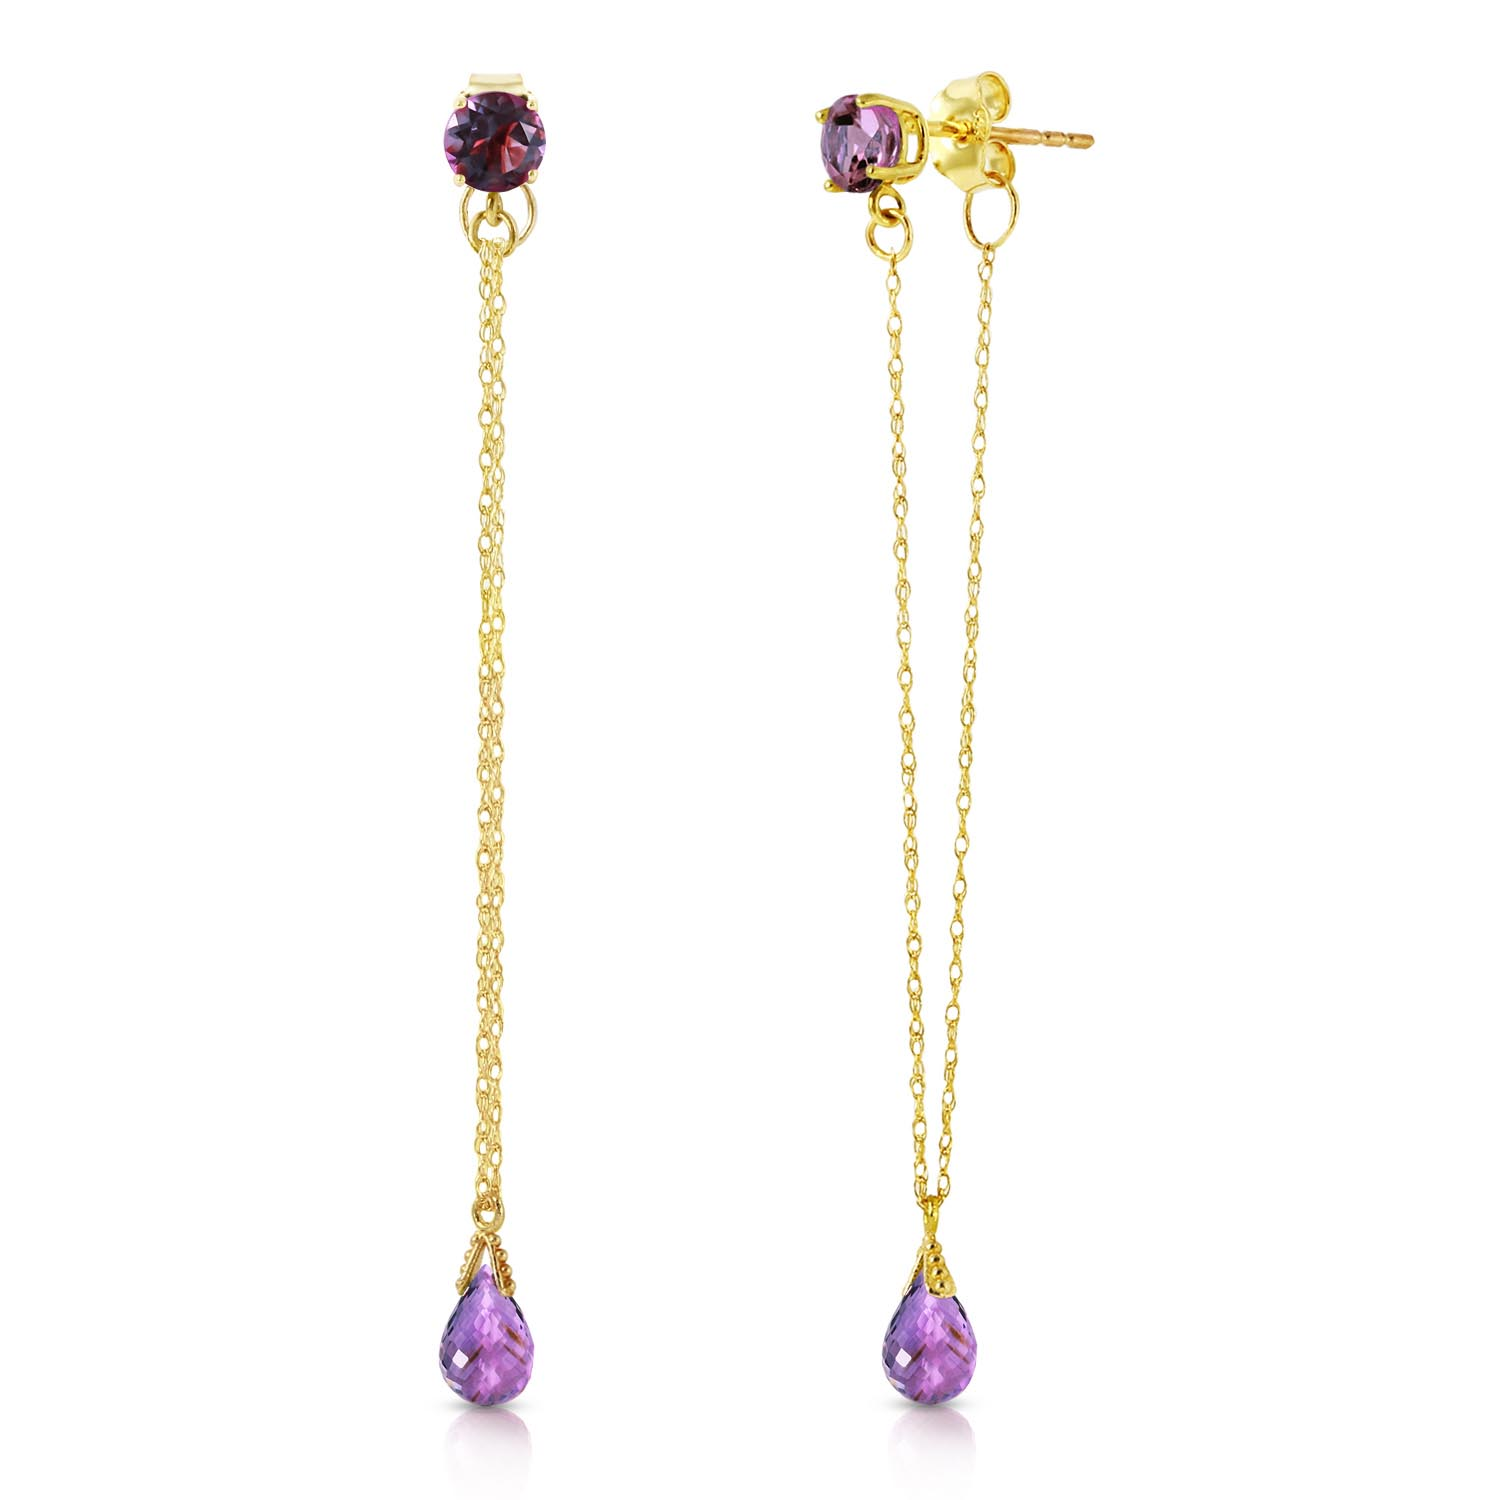 Amethyst Monte Carlo Drop Earrings 1.15ctw in 9ct Gold